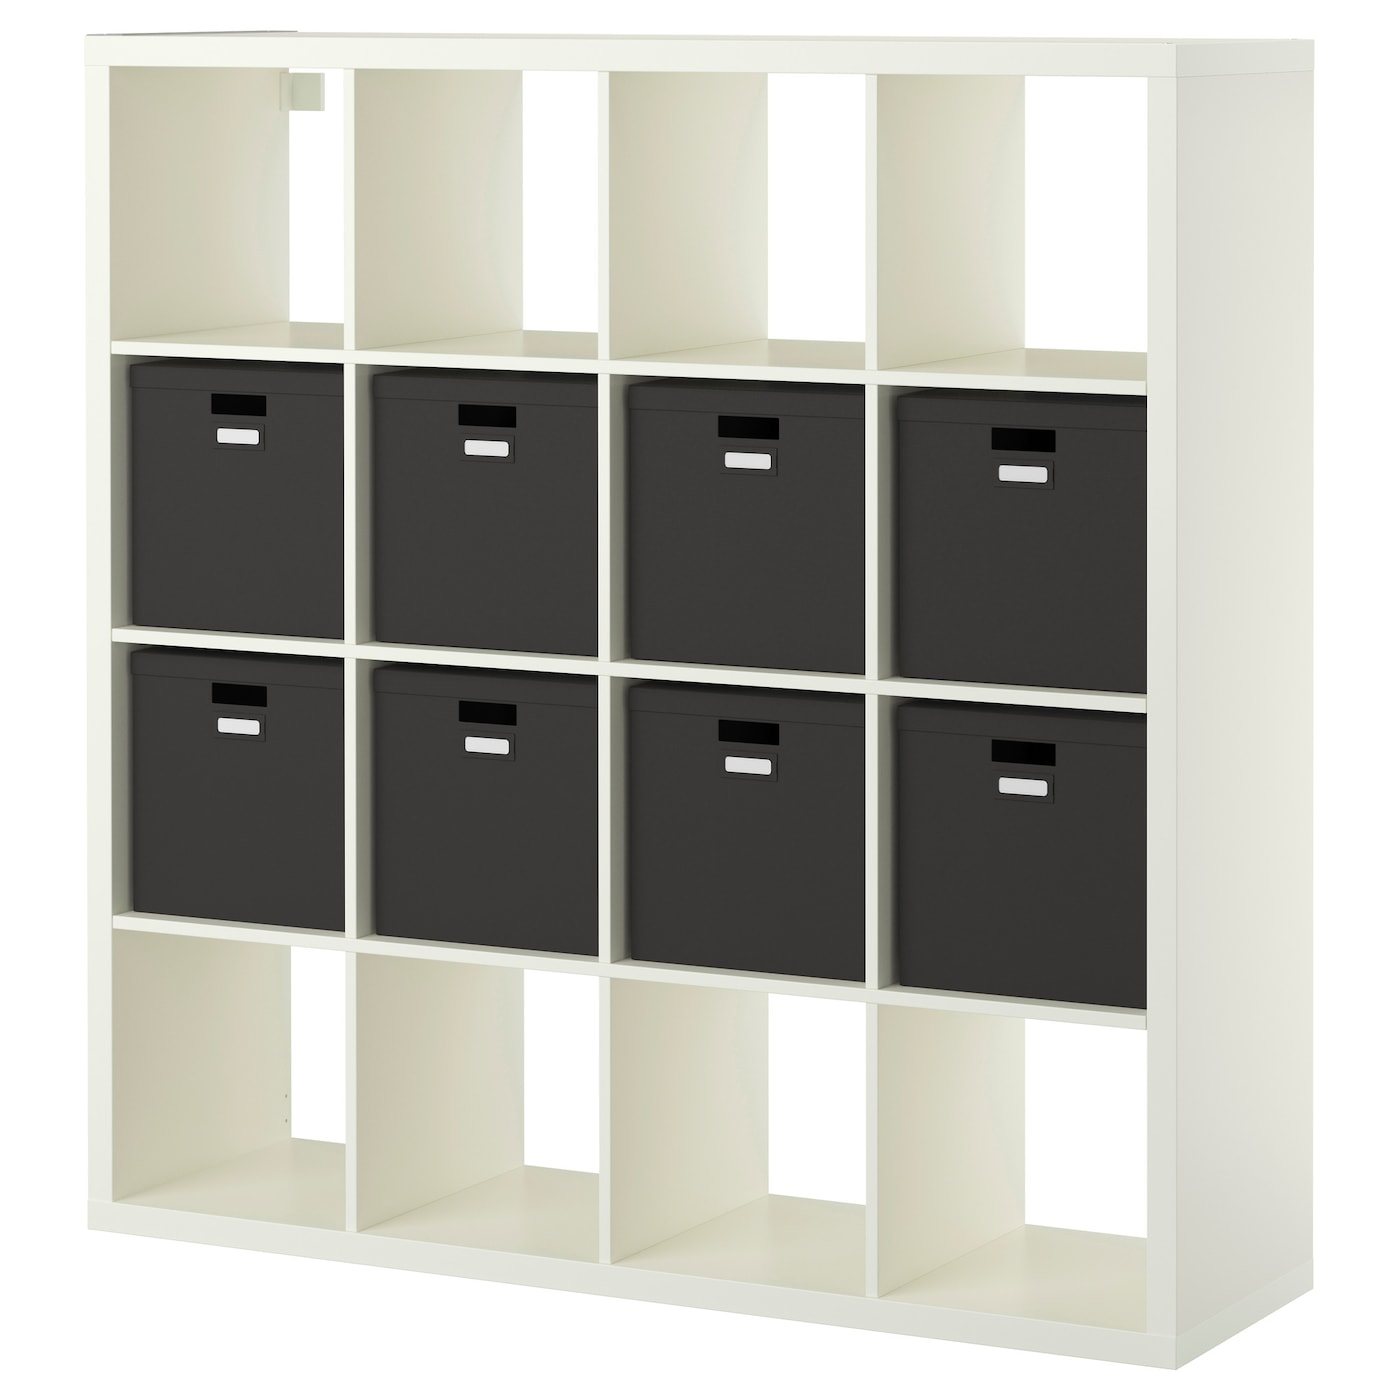 Kallax shelving unit with 8 inserts white 147x147 cm ikea - Etagere modulable ikea ...